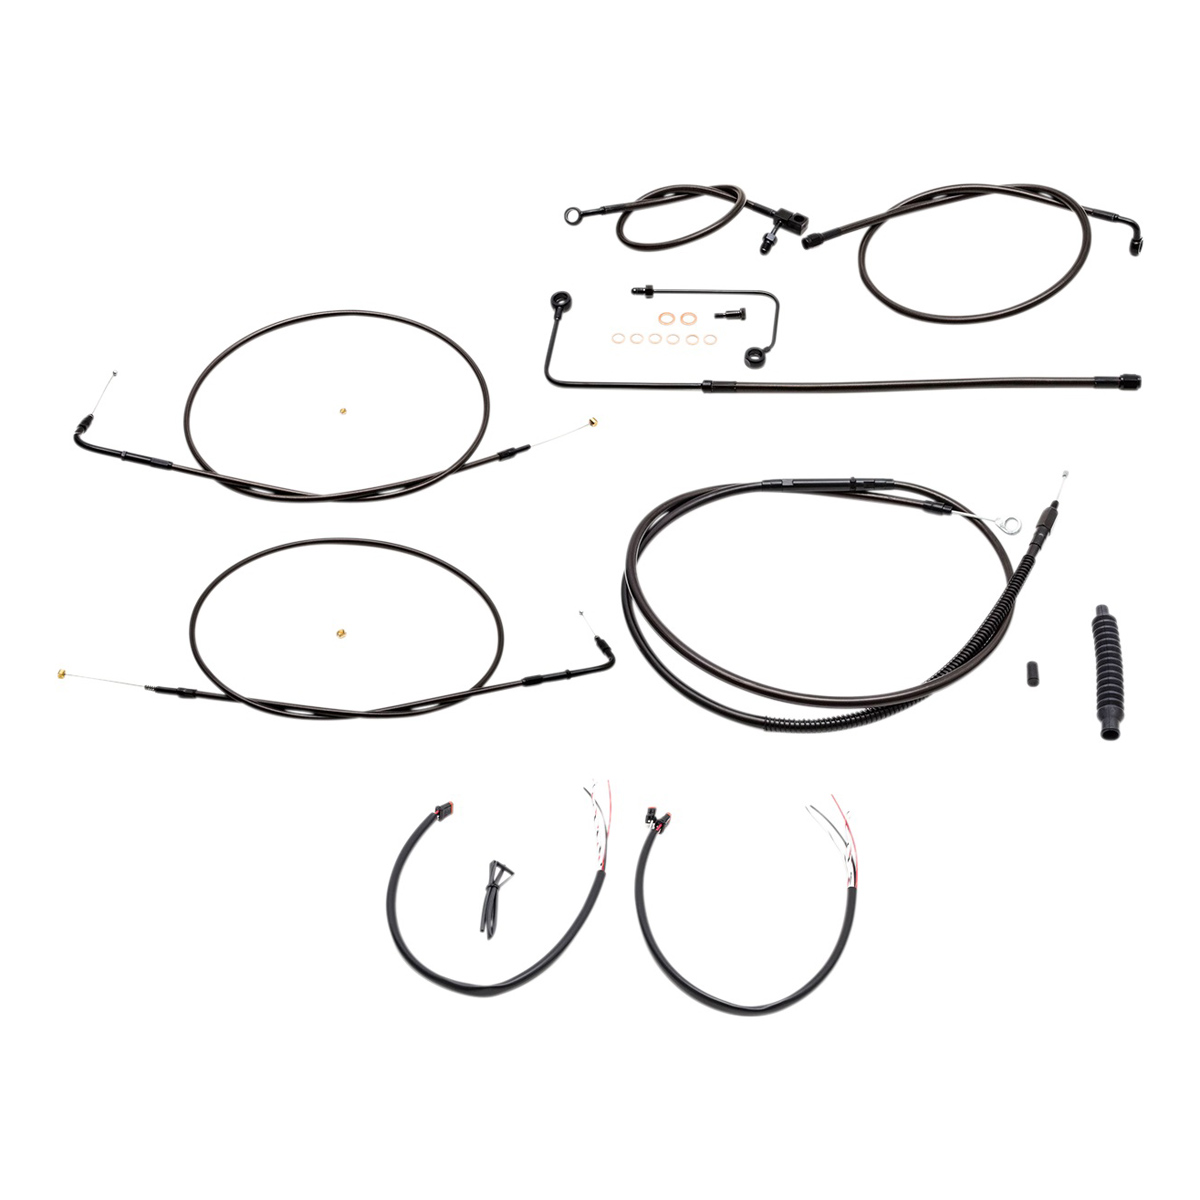 La Choppers Midnight Complete Cable Line Wiring Handlebar Kit For Mini Ape Bars On Models With